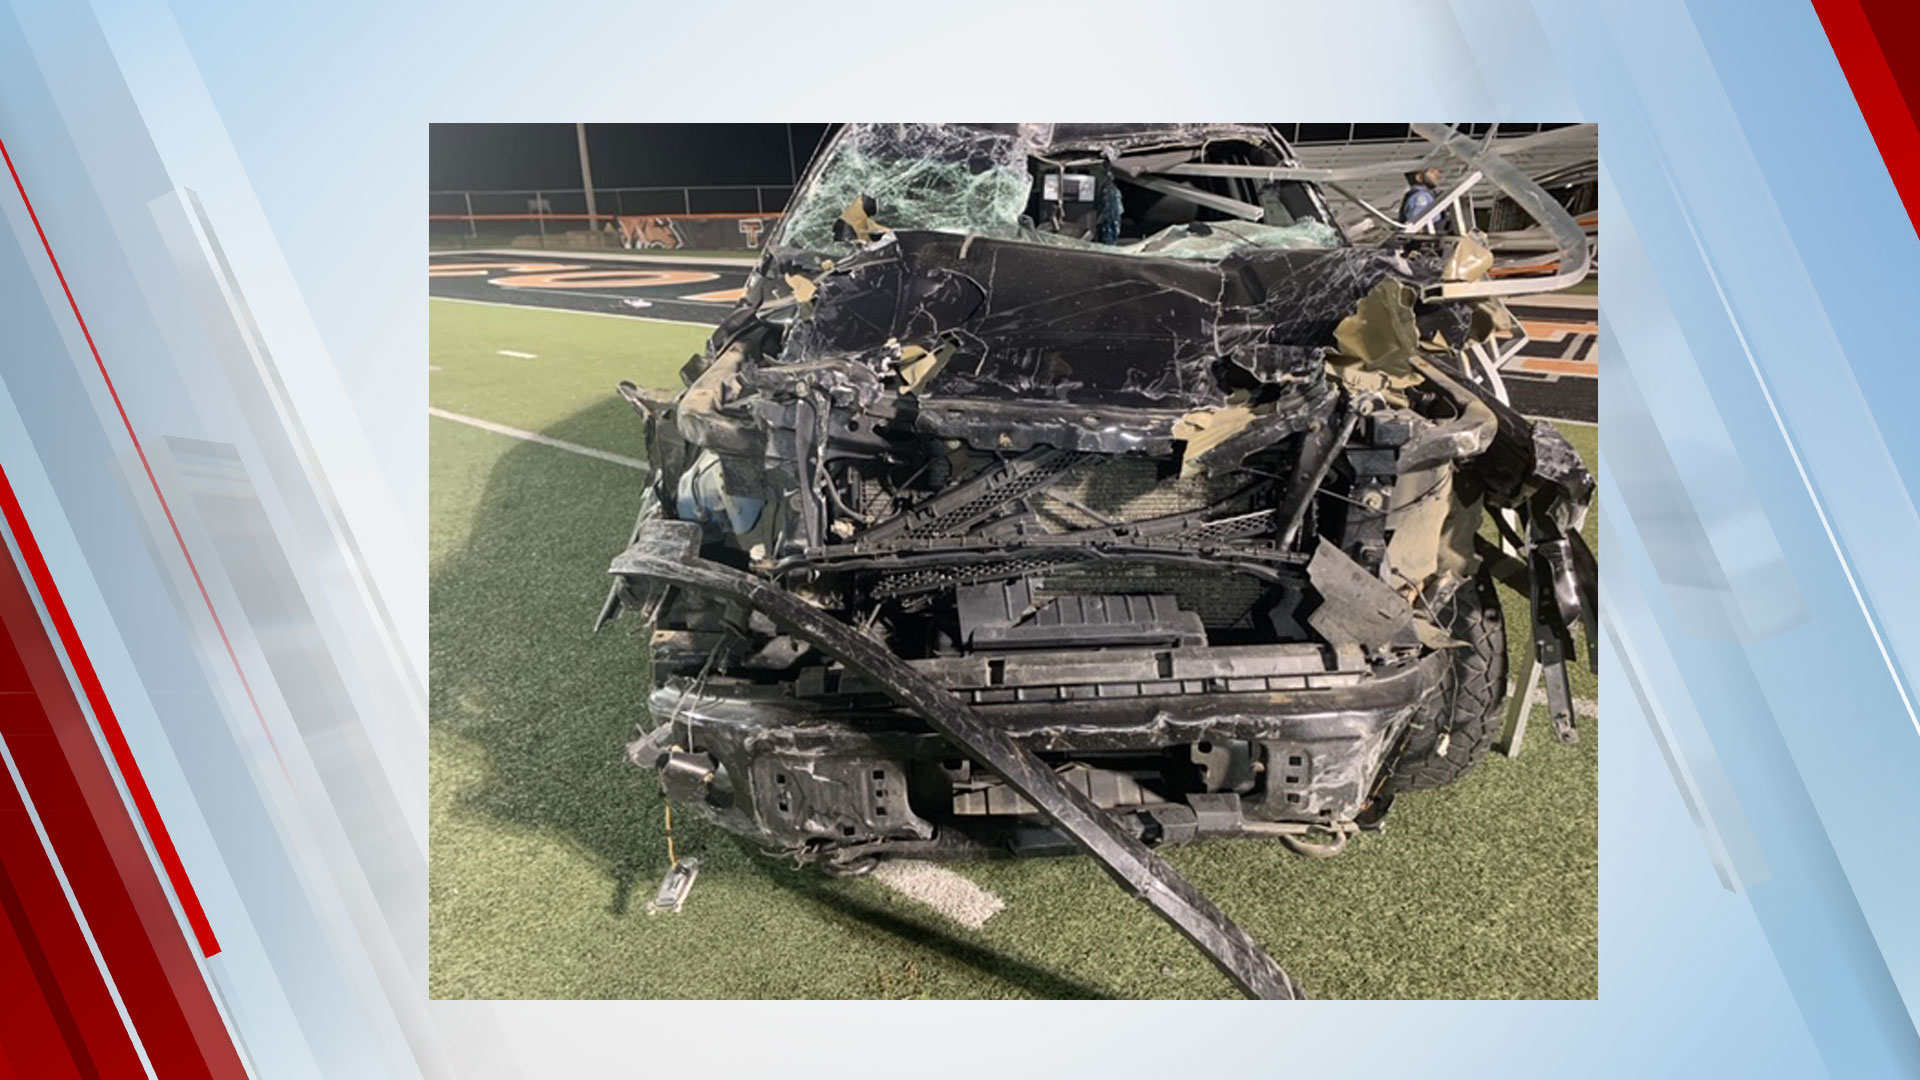 Driver Arrested On DUI Complaint After Truck Goes Airborne, Lands On Football Field